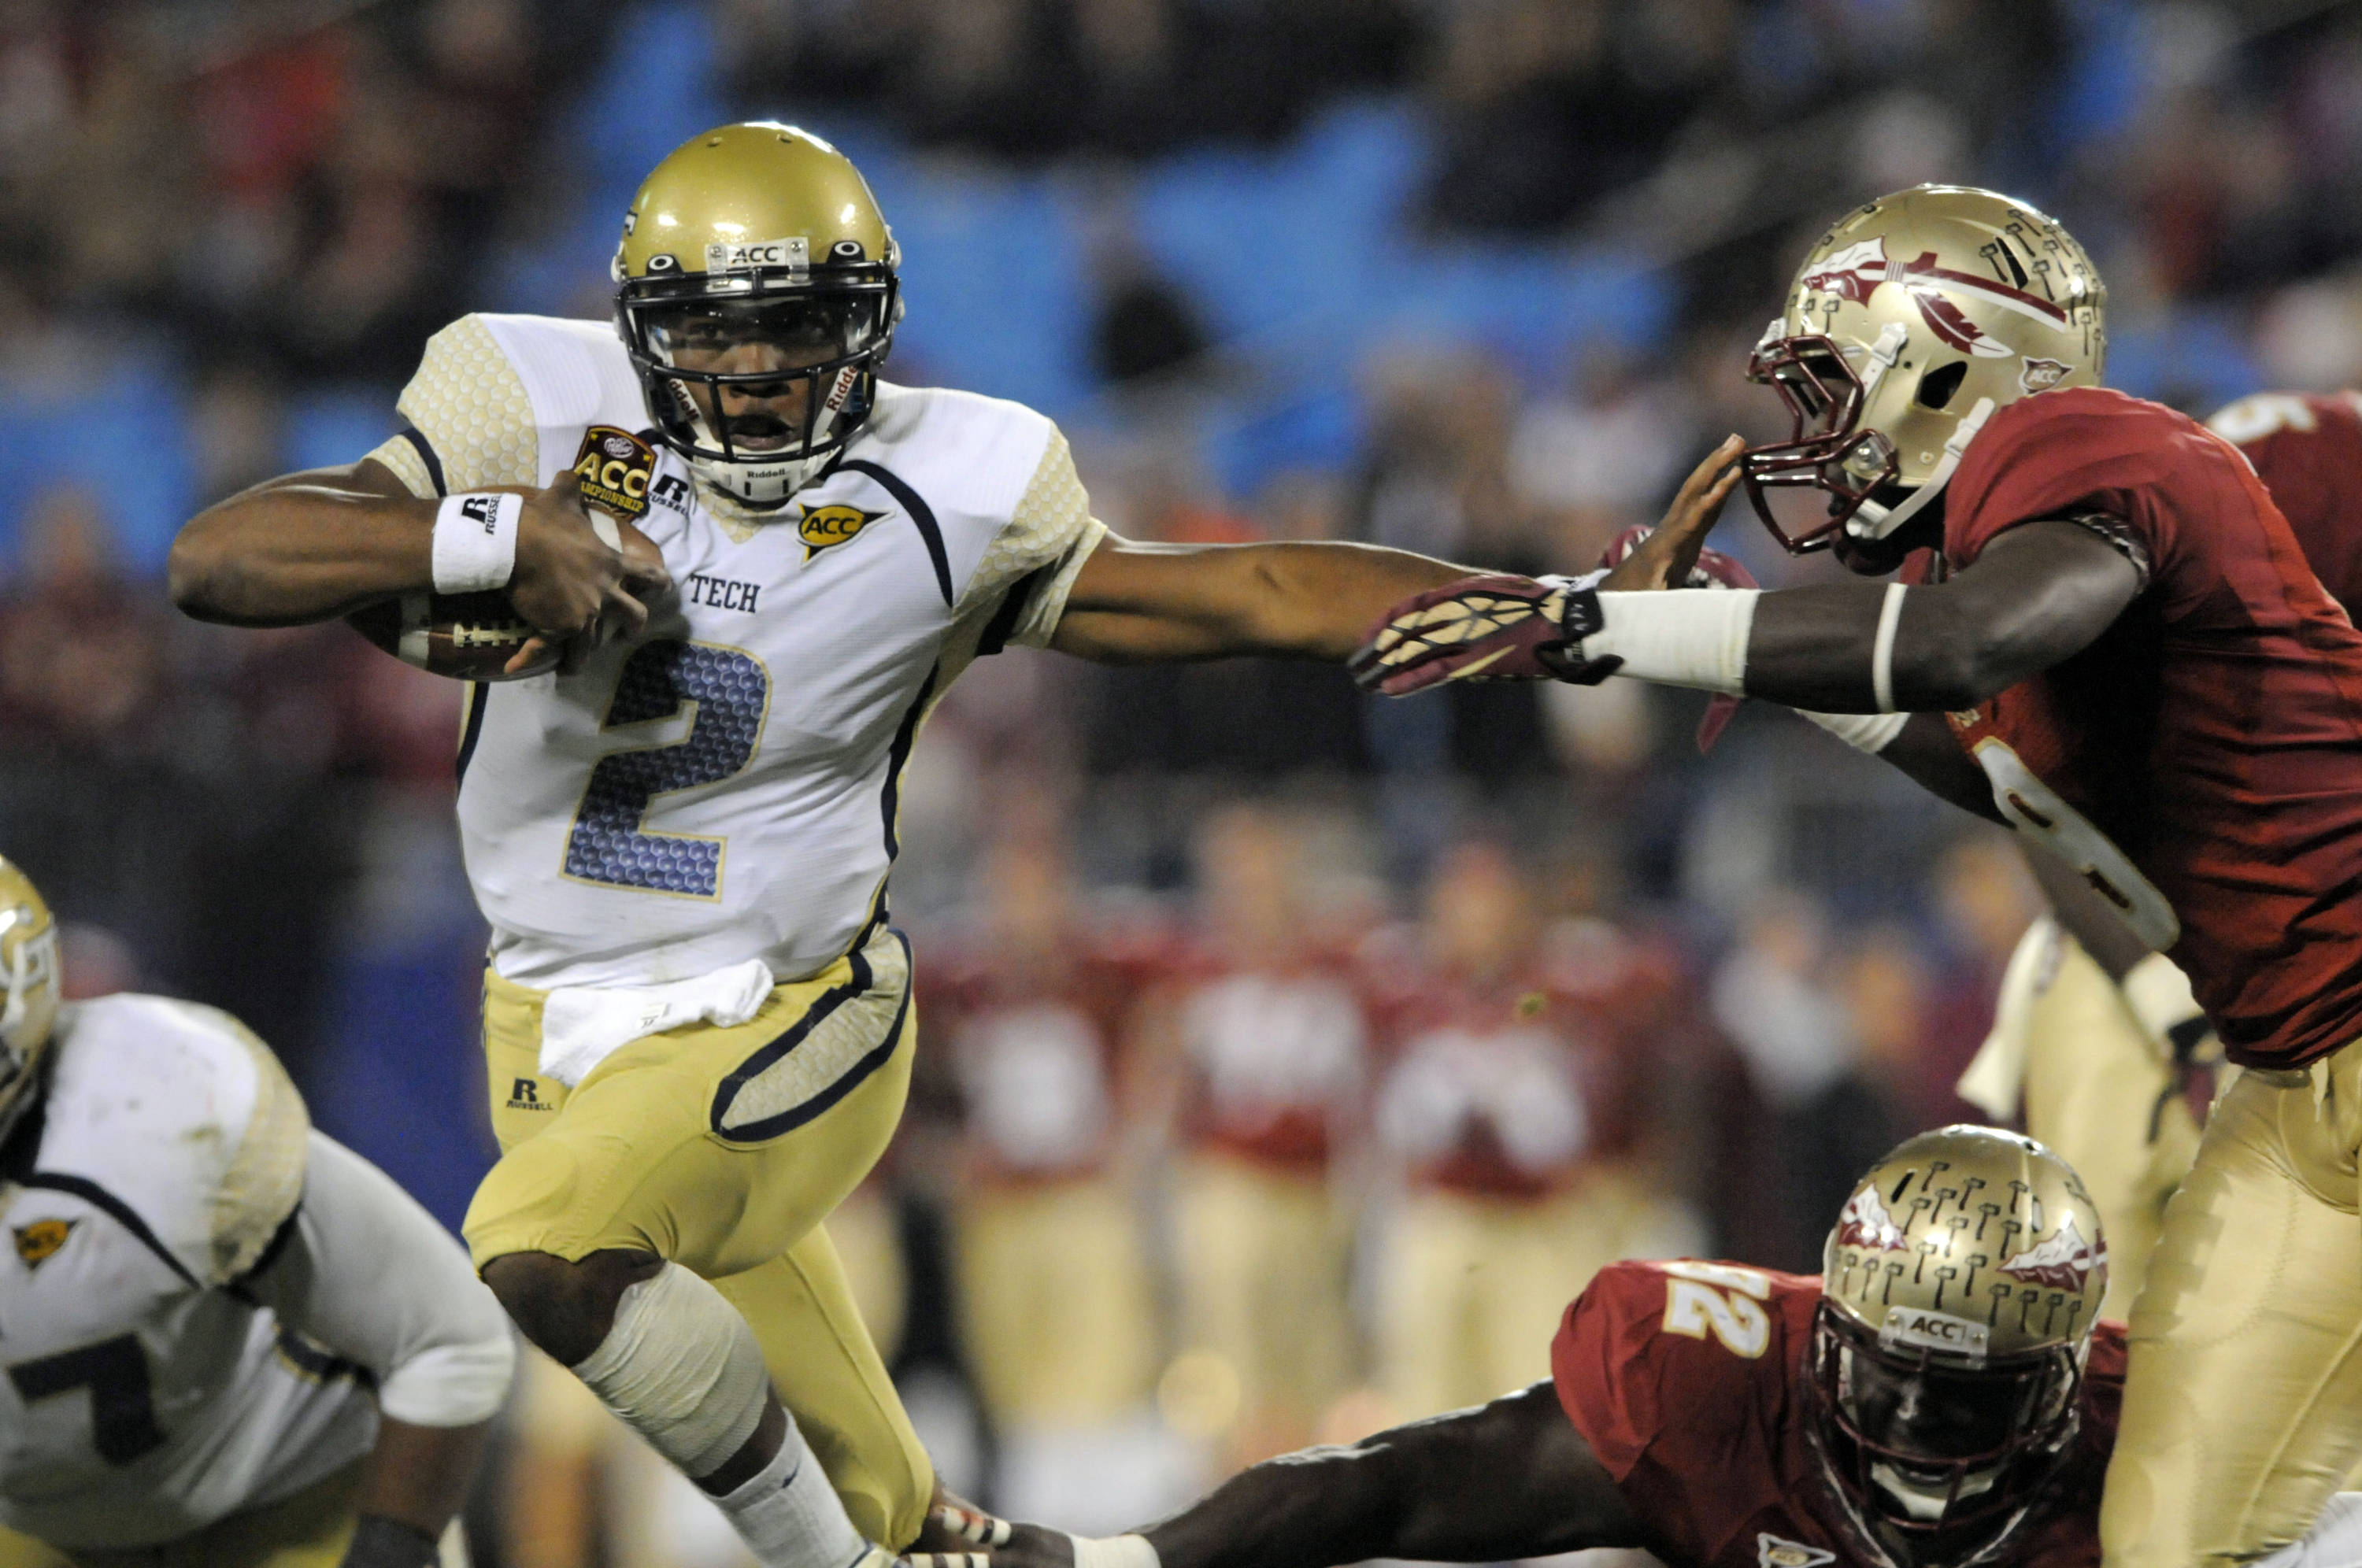 Georgia Tech's Vad Lee (2) tries to run past Florida State's Timmy Jernigan (8) during the first half of the ACC Championship college football game in Charlotte, N.C., Saturday, Dec. 1, 2012. (AP Photo/Mike McCarn)